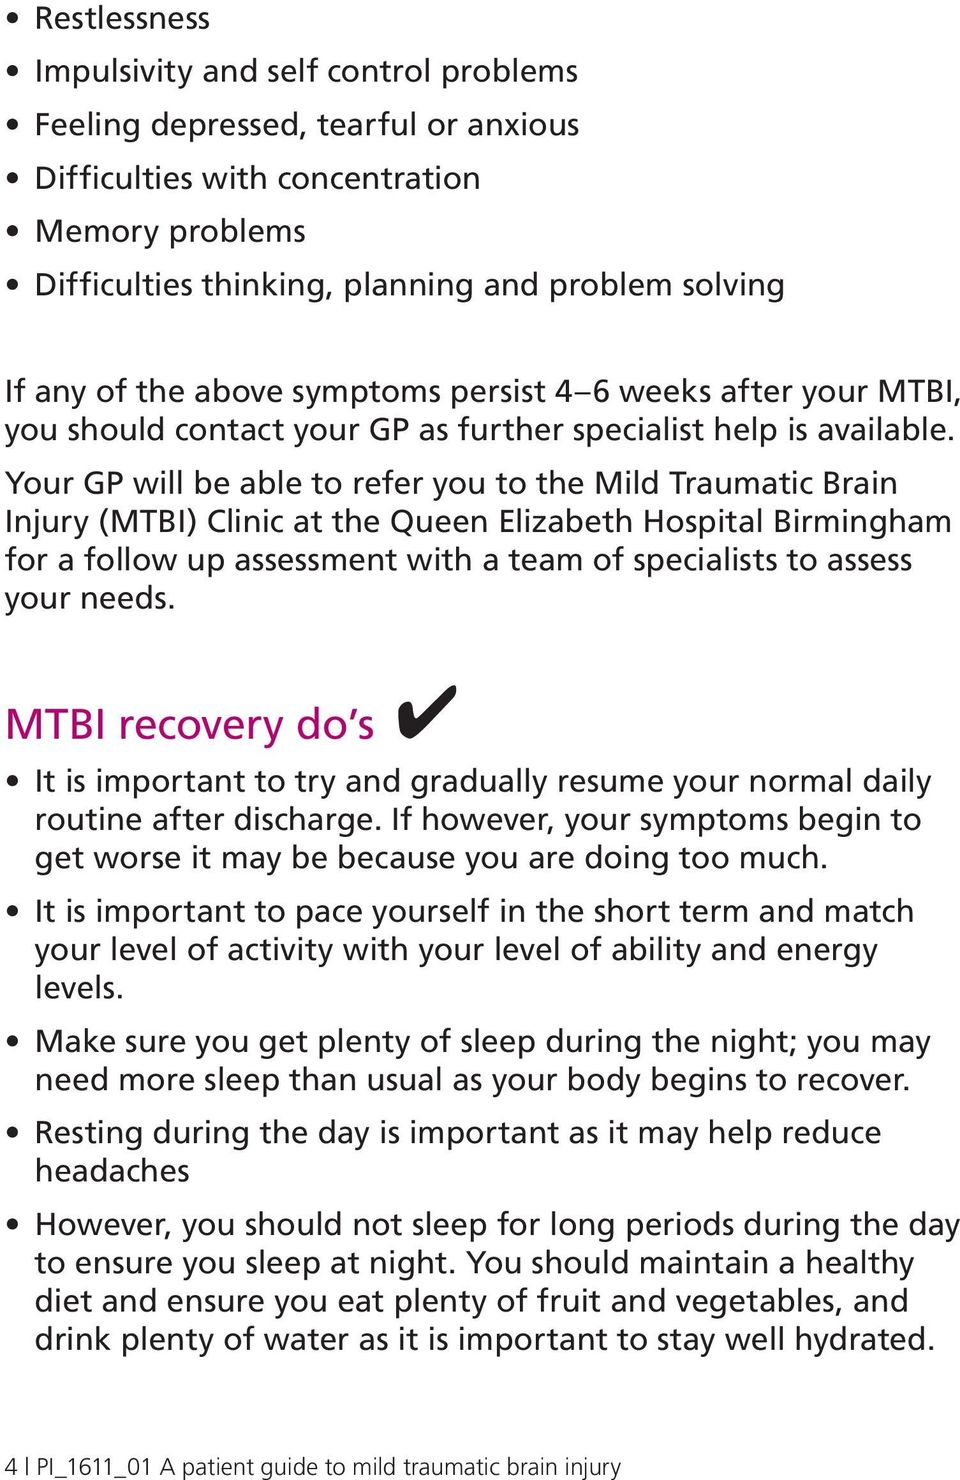 Your GP will be able to refer you to the Mild Traumatic Brain Injury (MTBI) Clinic at the Queen Elizabeth Hospital Birmingham for a follow up assessment with a team of specialists to assess your